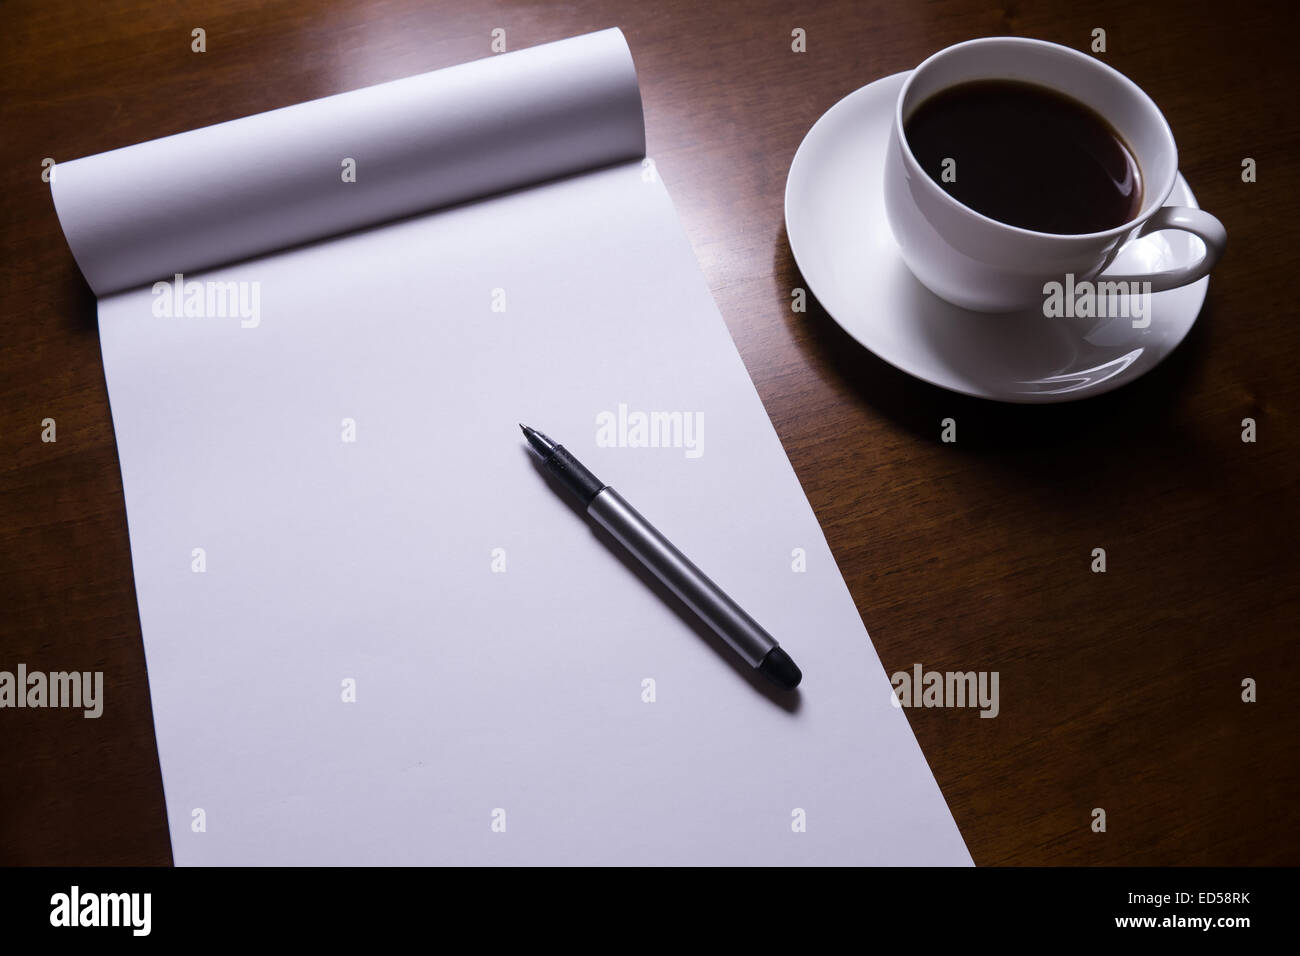 sheet of paper, pen and cup of coffee on desk - Stock Image